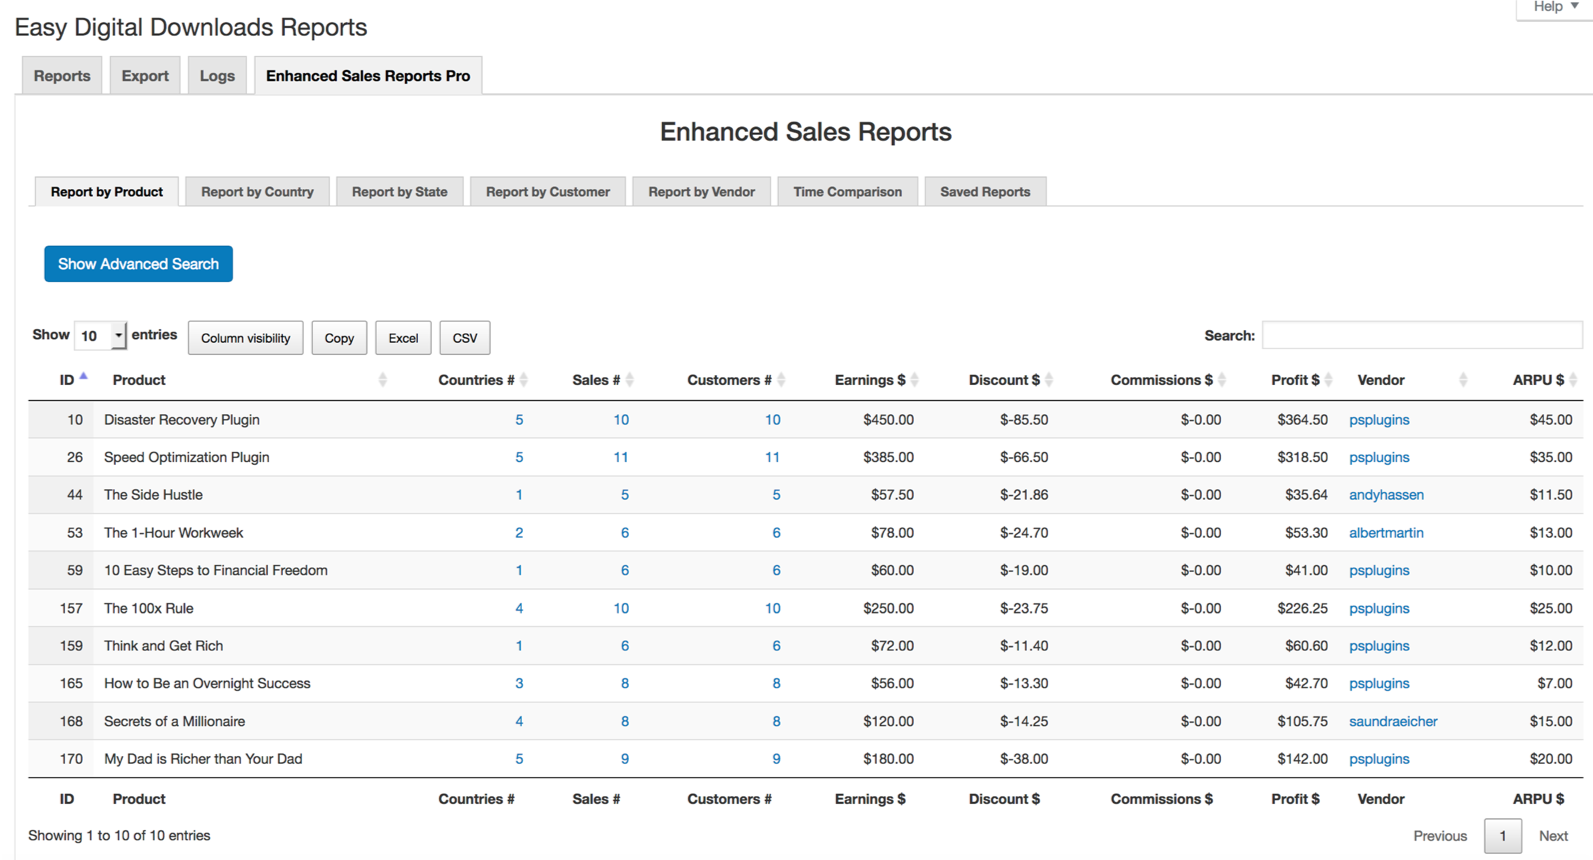 EDD Enhanced Sales Reports Pro Plugin Report by Product